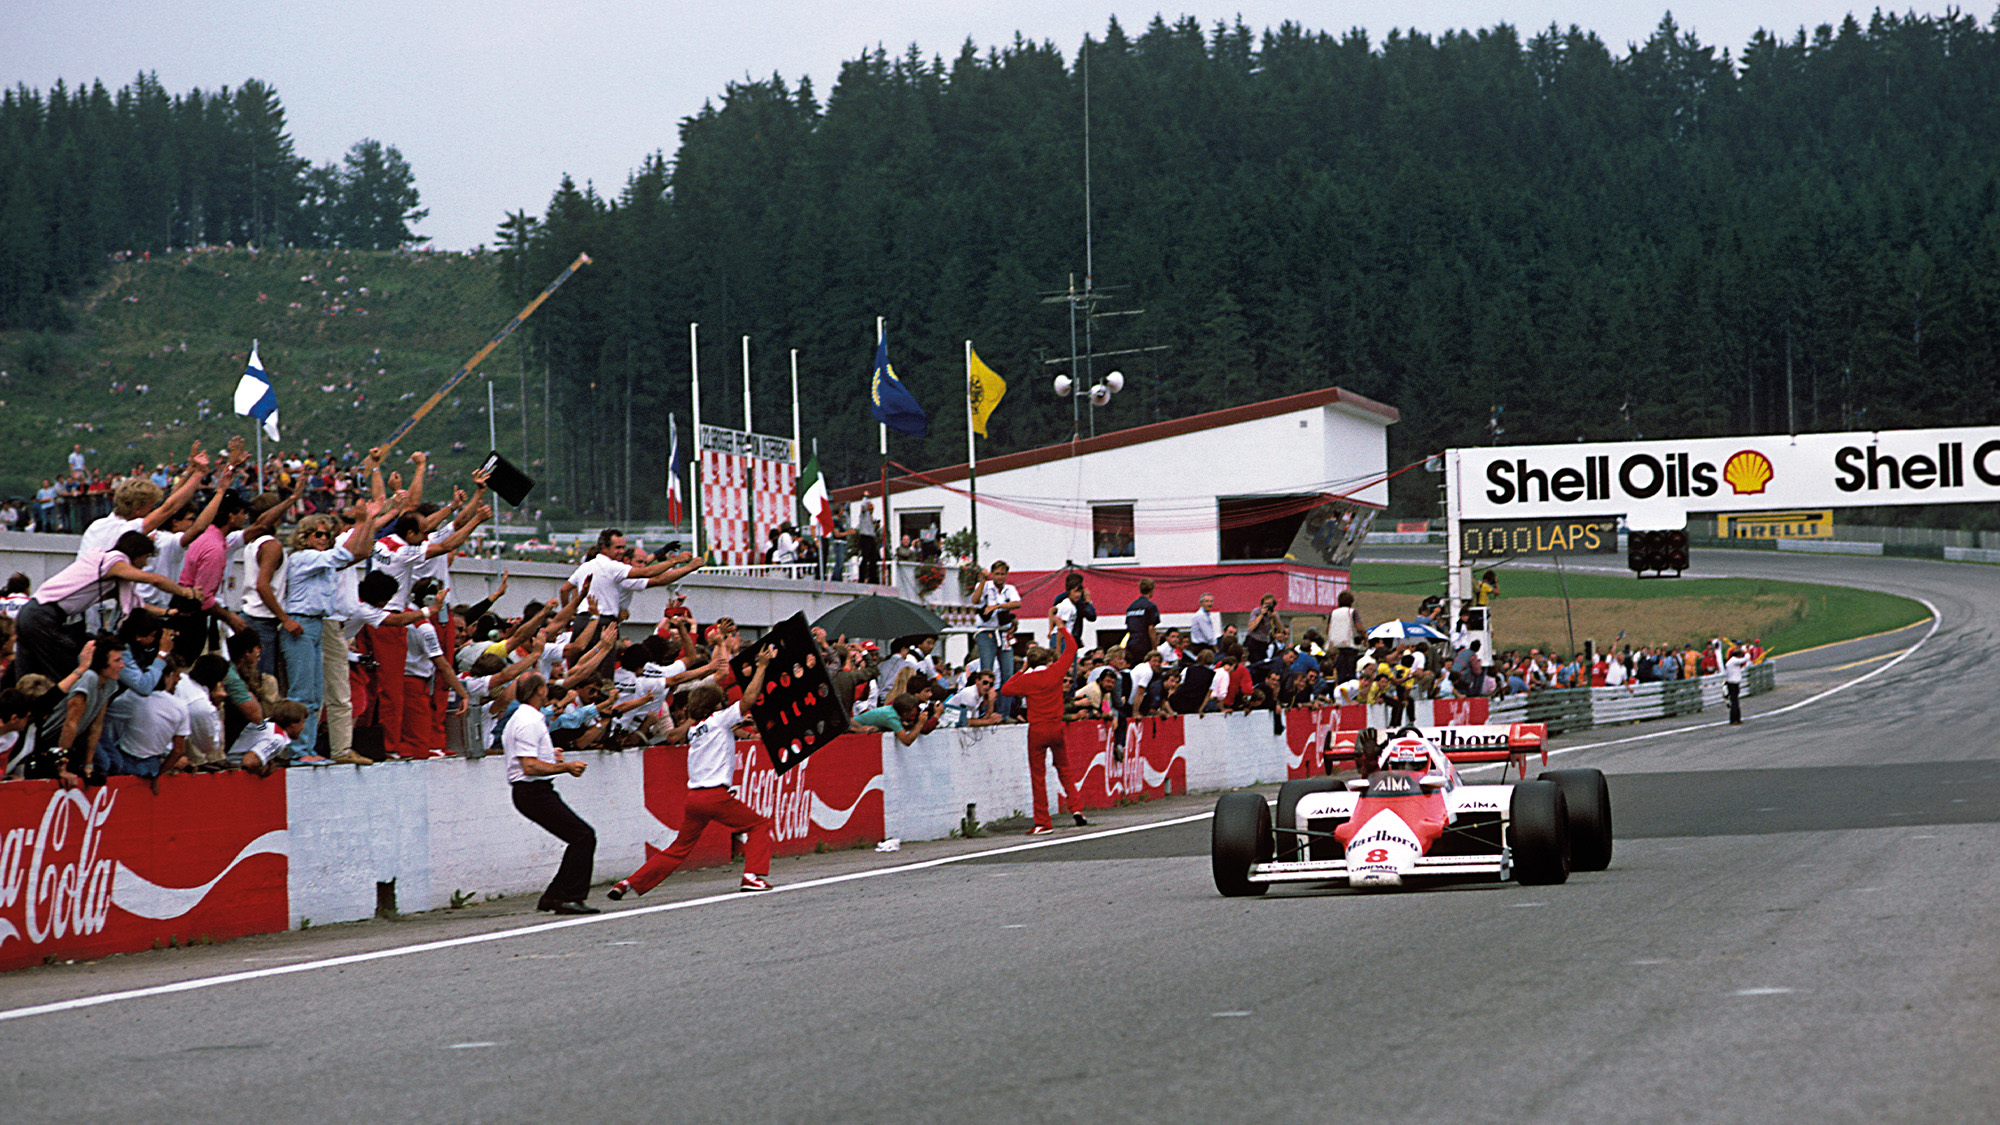 Niki Lauda winning the Austrian Grand Prix at the Osterreichring in 1984